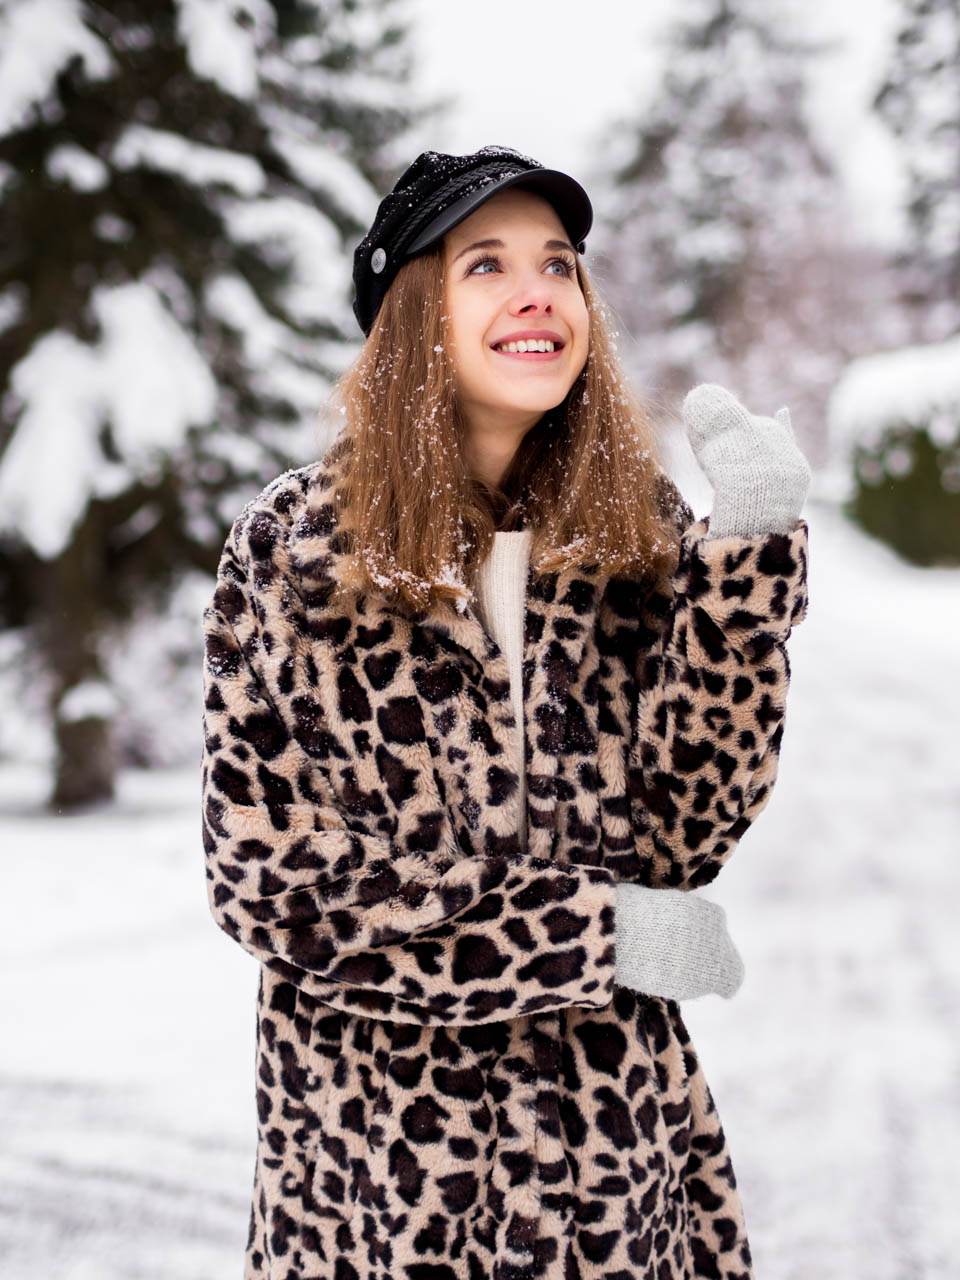 winter-wonderland-snow-leopard-coat